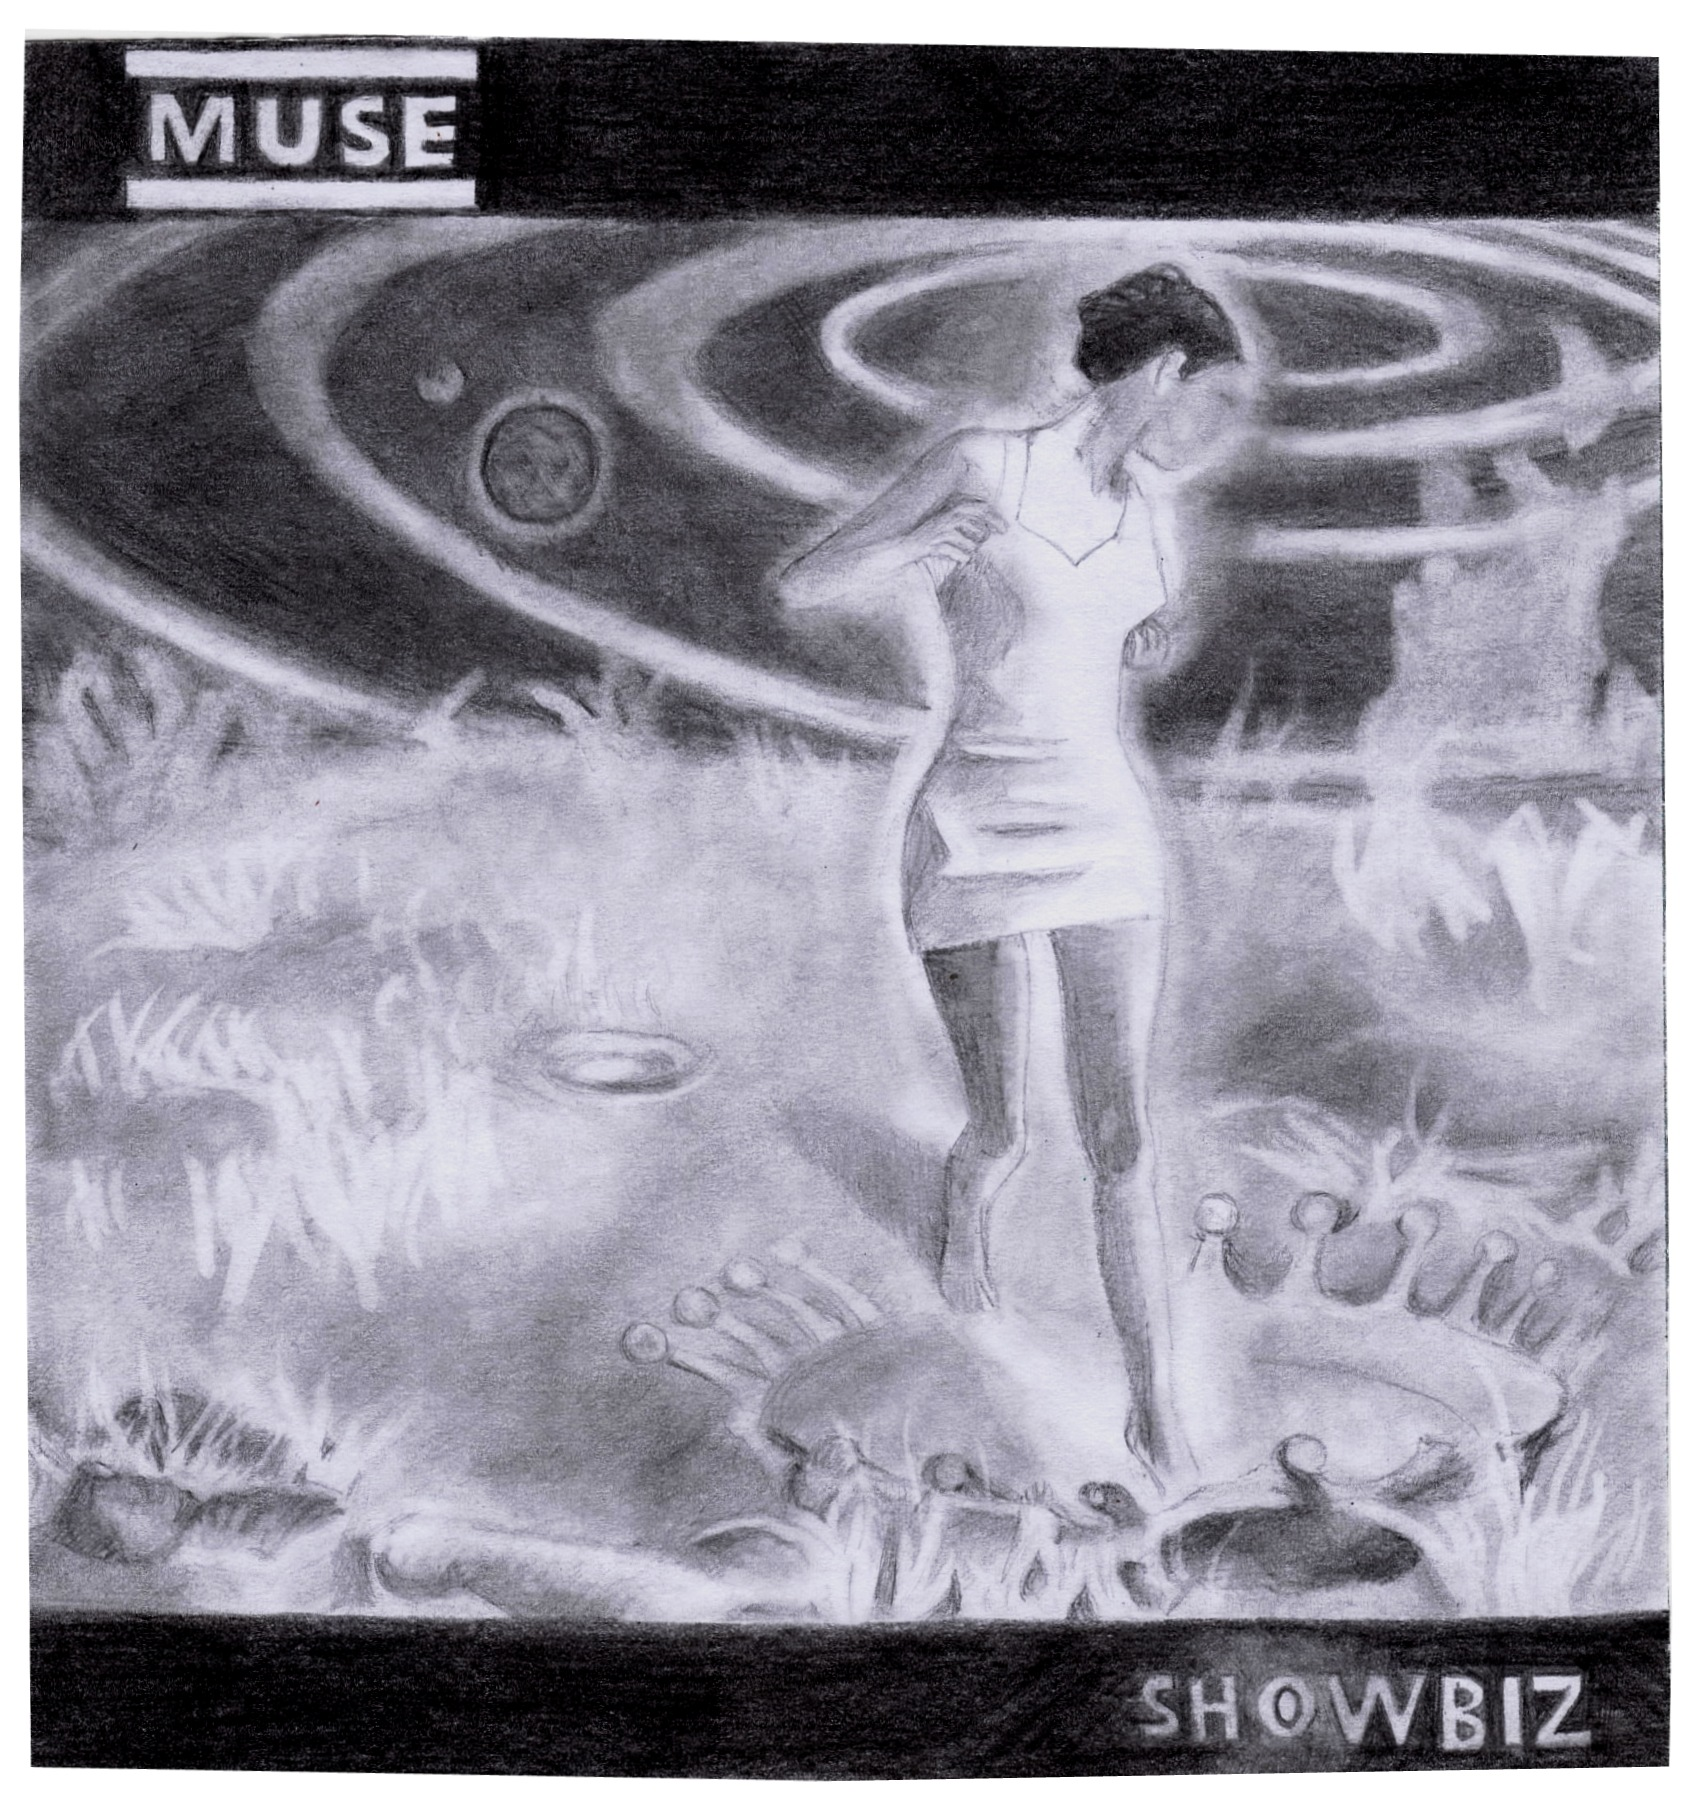 Muse-Showbiz (cover) by Lidia6277